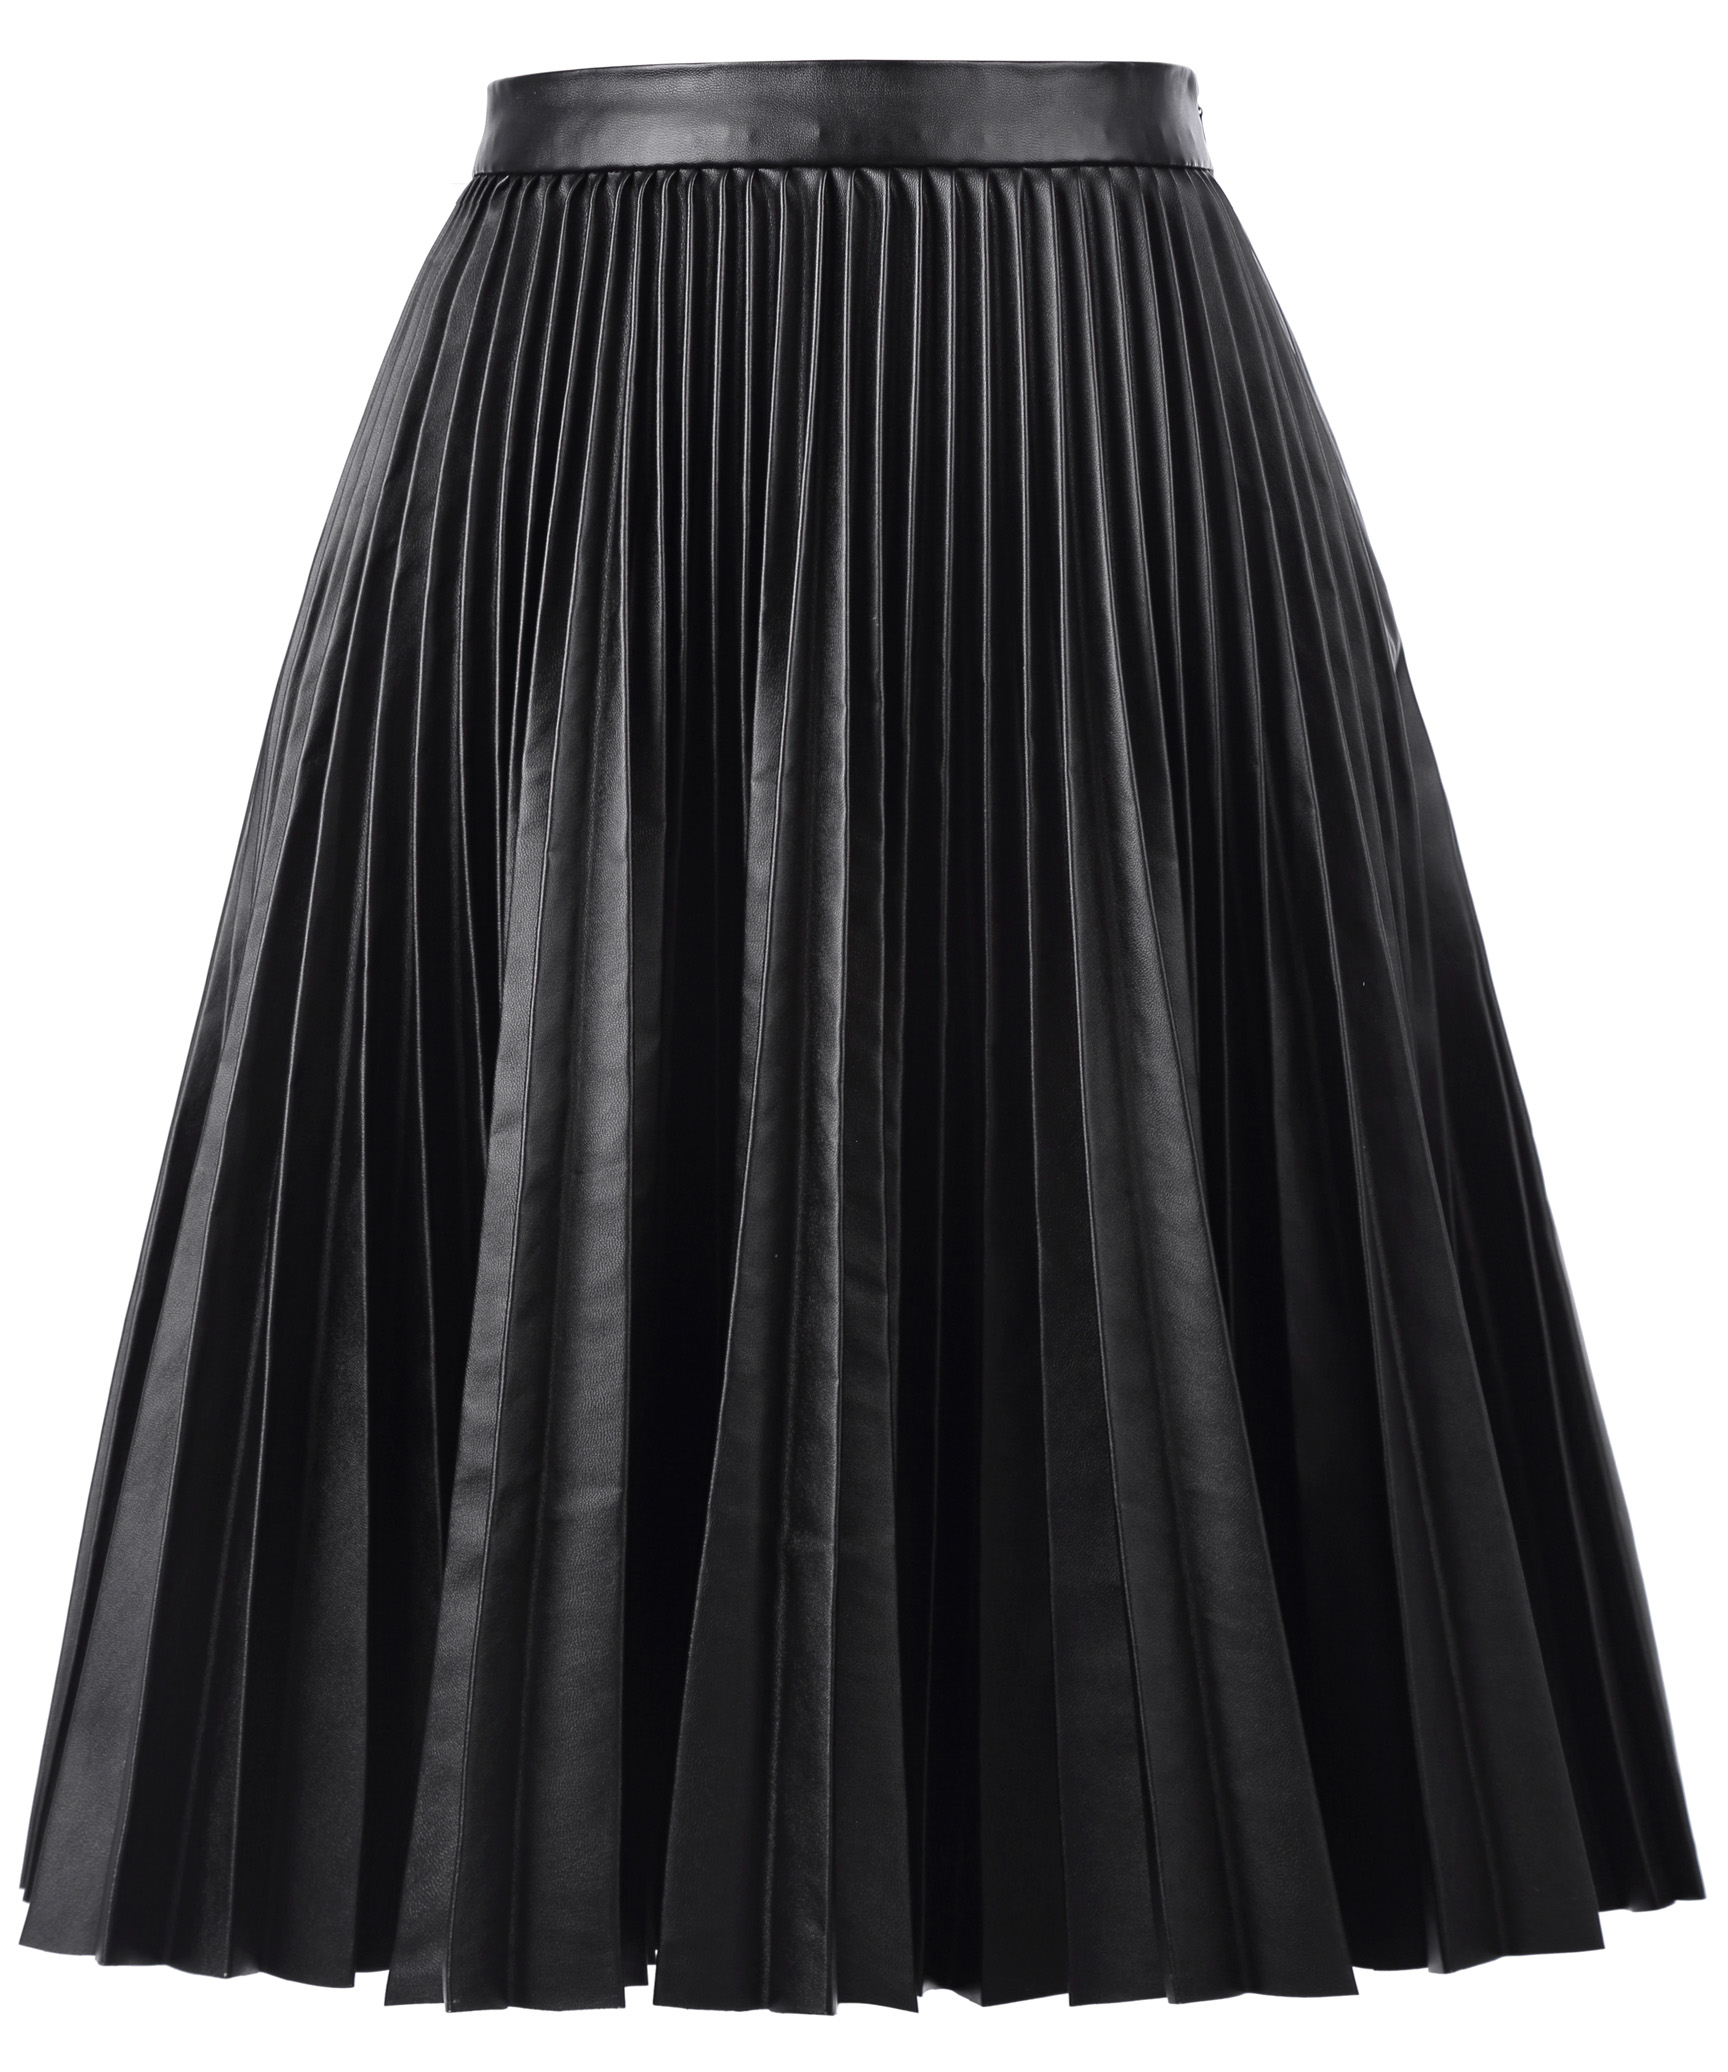 2018 Original Women Basic Pleated Synthetic Leather Flared ALine Skirt OL Fashional Free Shipping High Quality Skirt